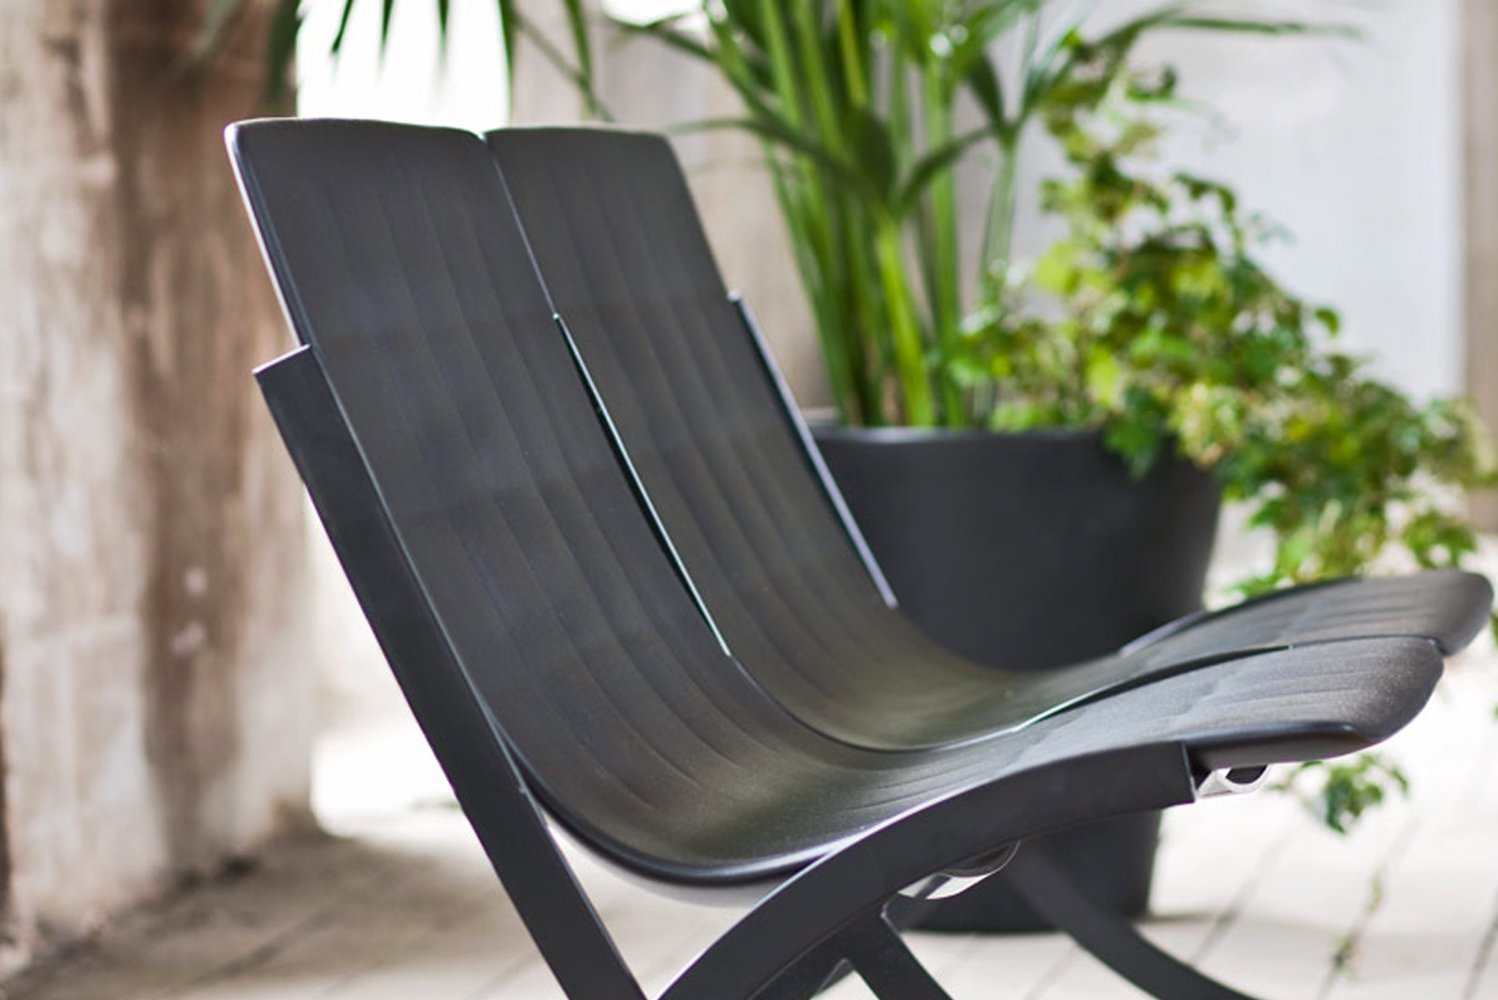 Barceloneta is a stackable, rotationally molded plastic sofa (and armchair) for outdoor use.